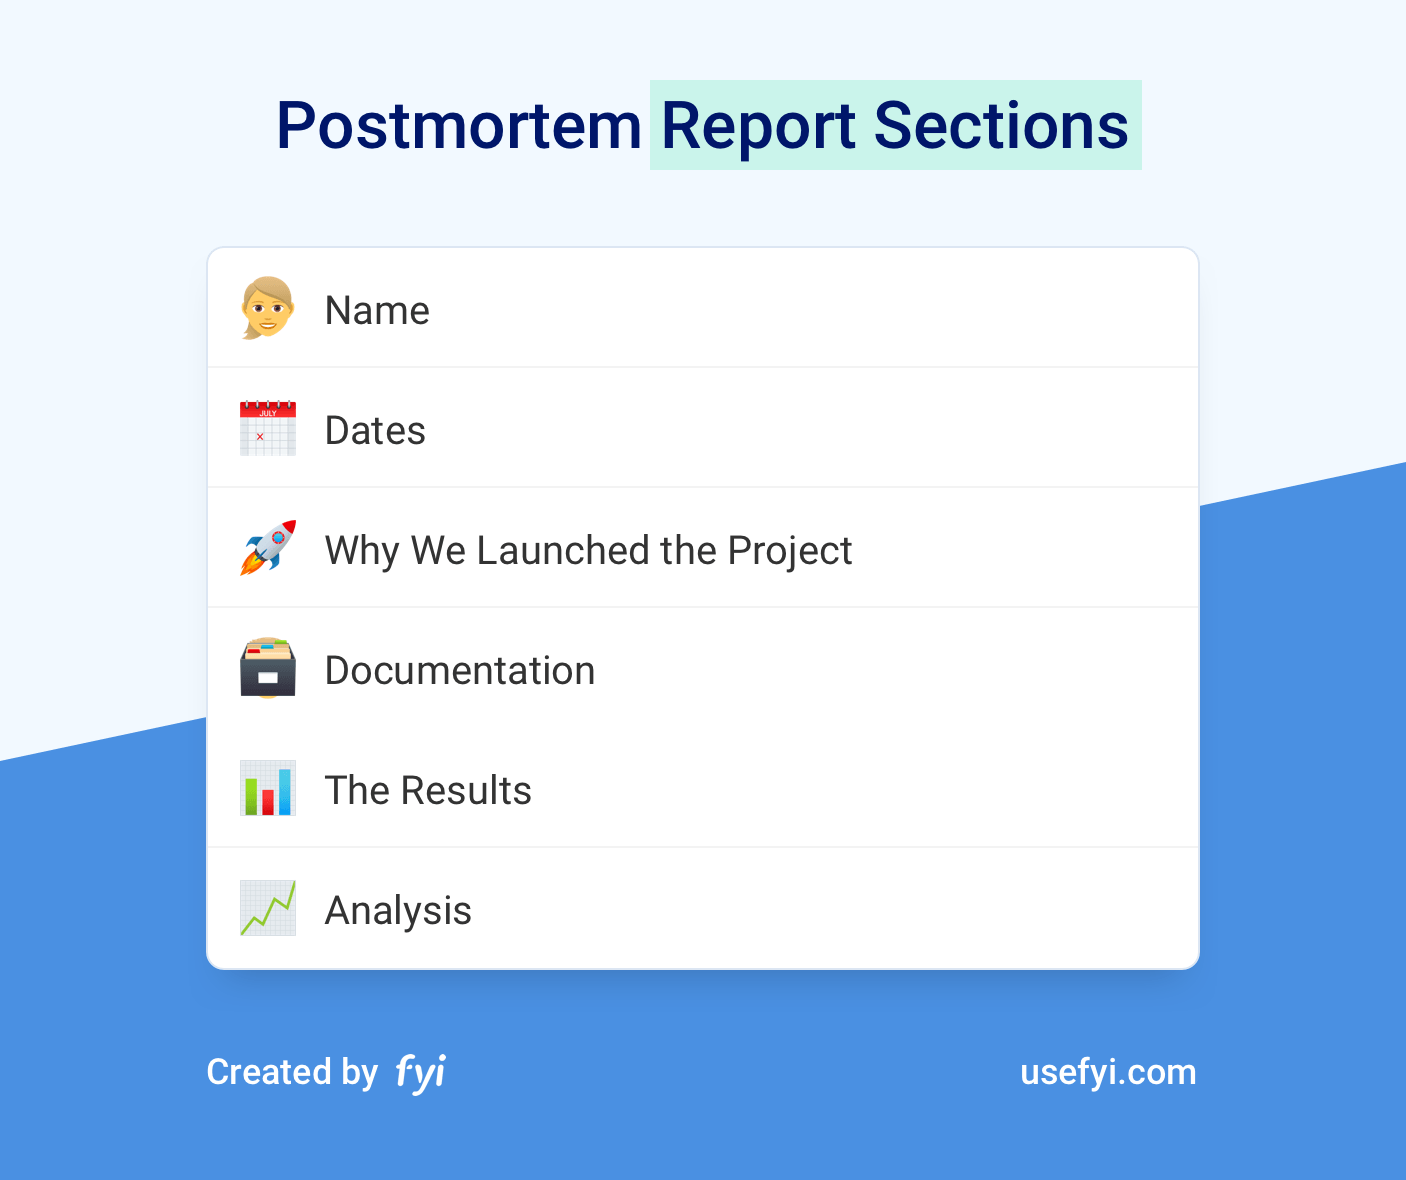 Postmortem Report Sections